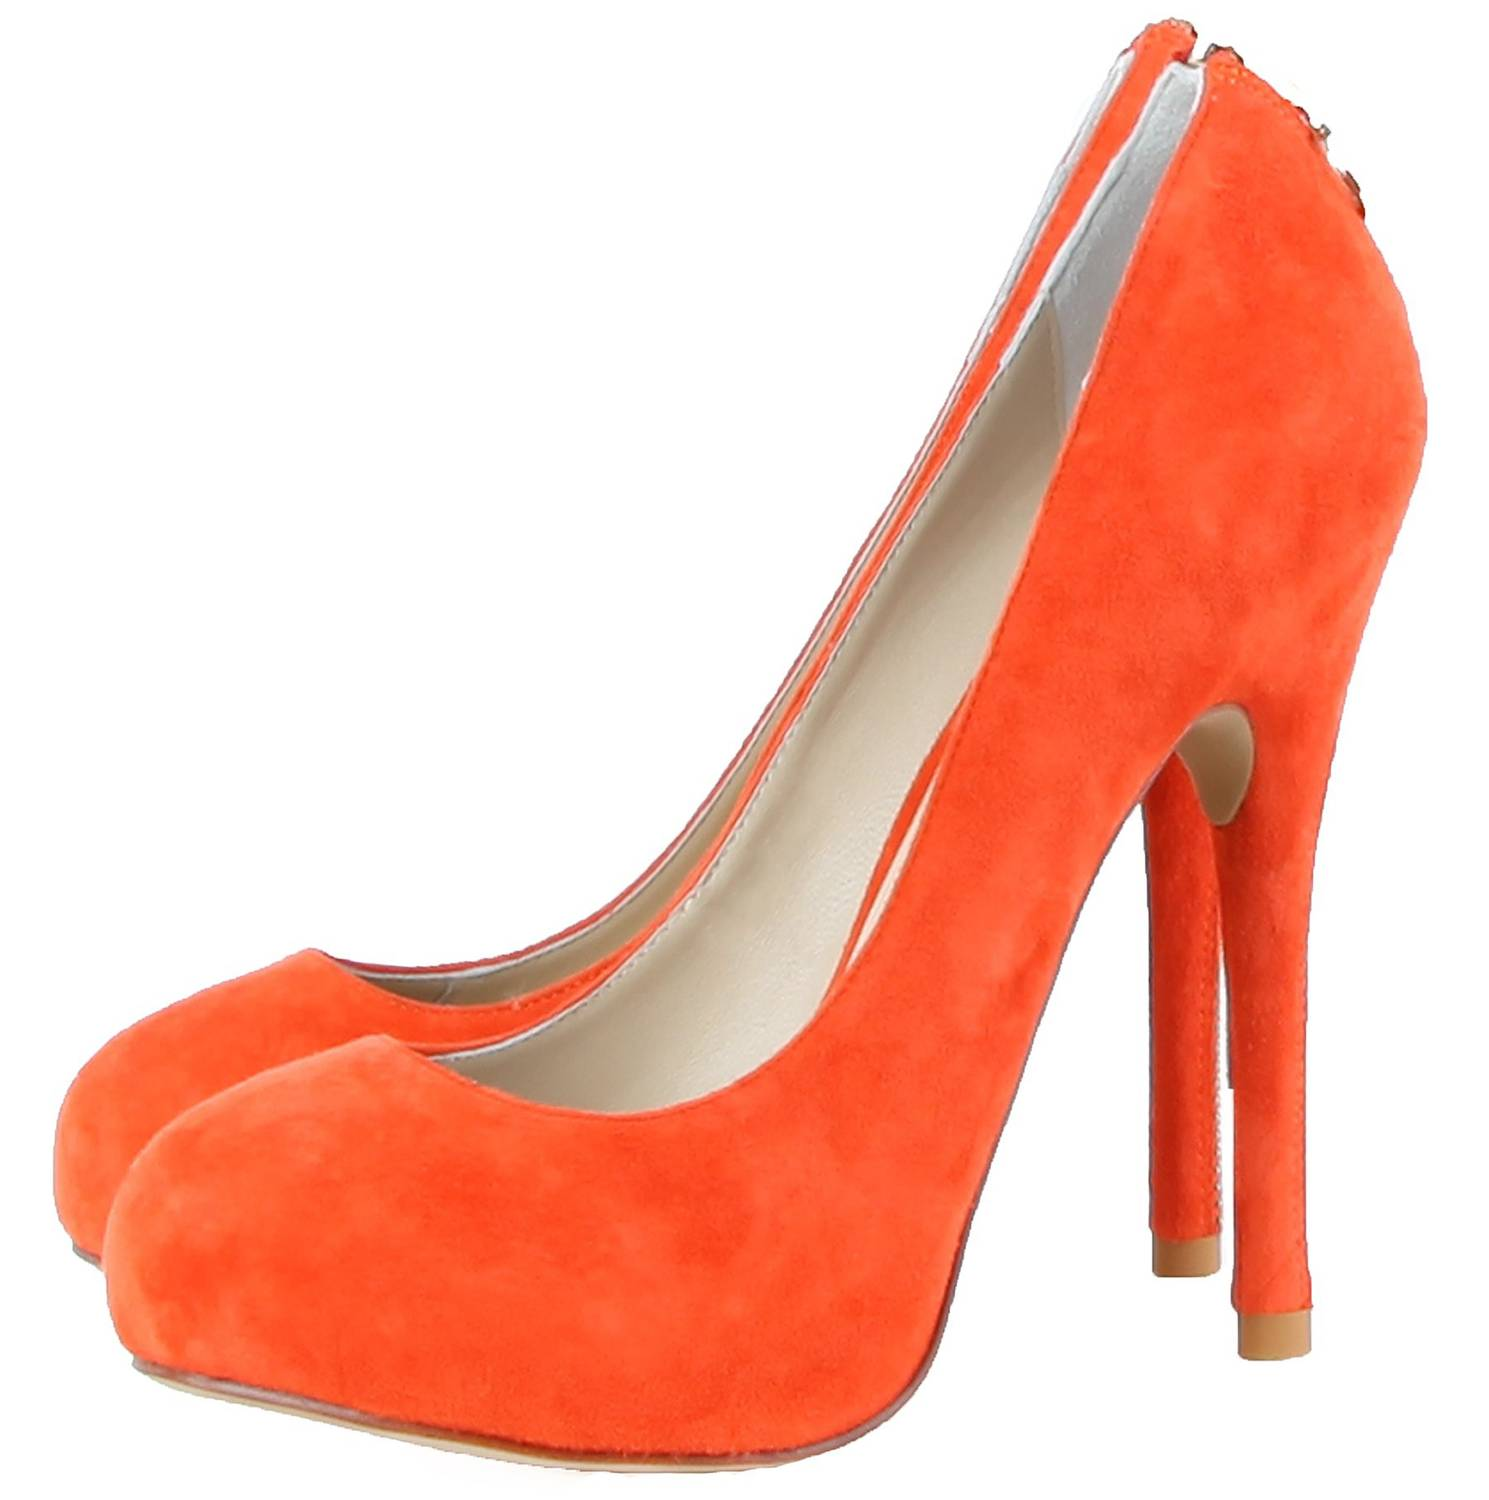 Janiko High-Heels Classics Pumps Tabu Coral red